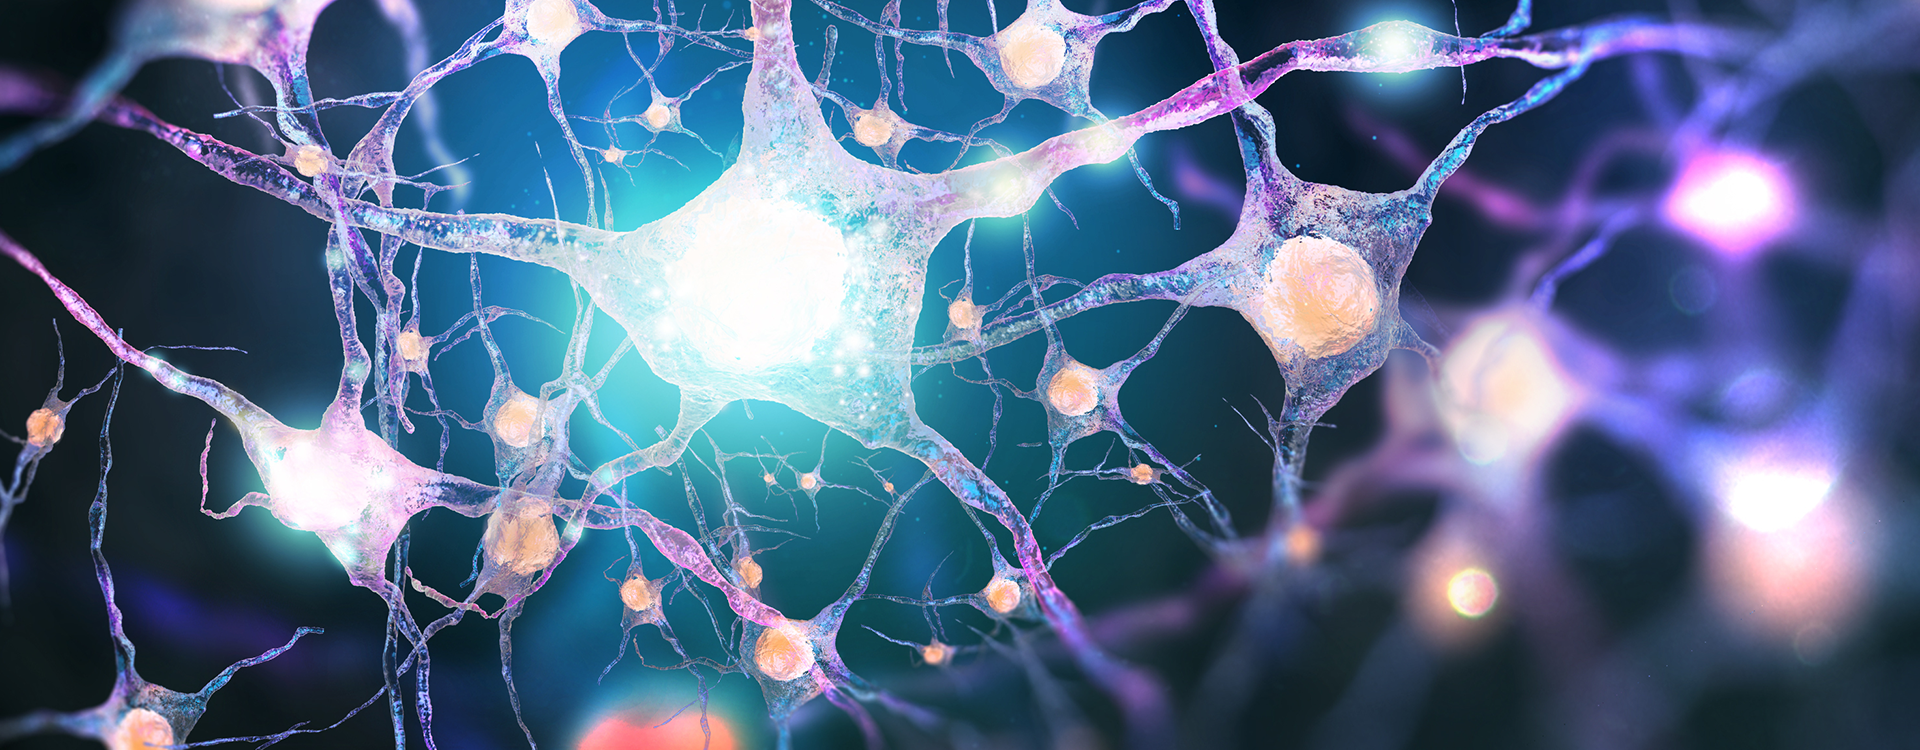 Neurons form new connections in the brain to overcome neural trauma.